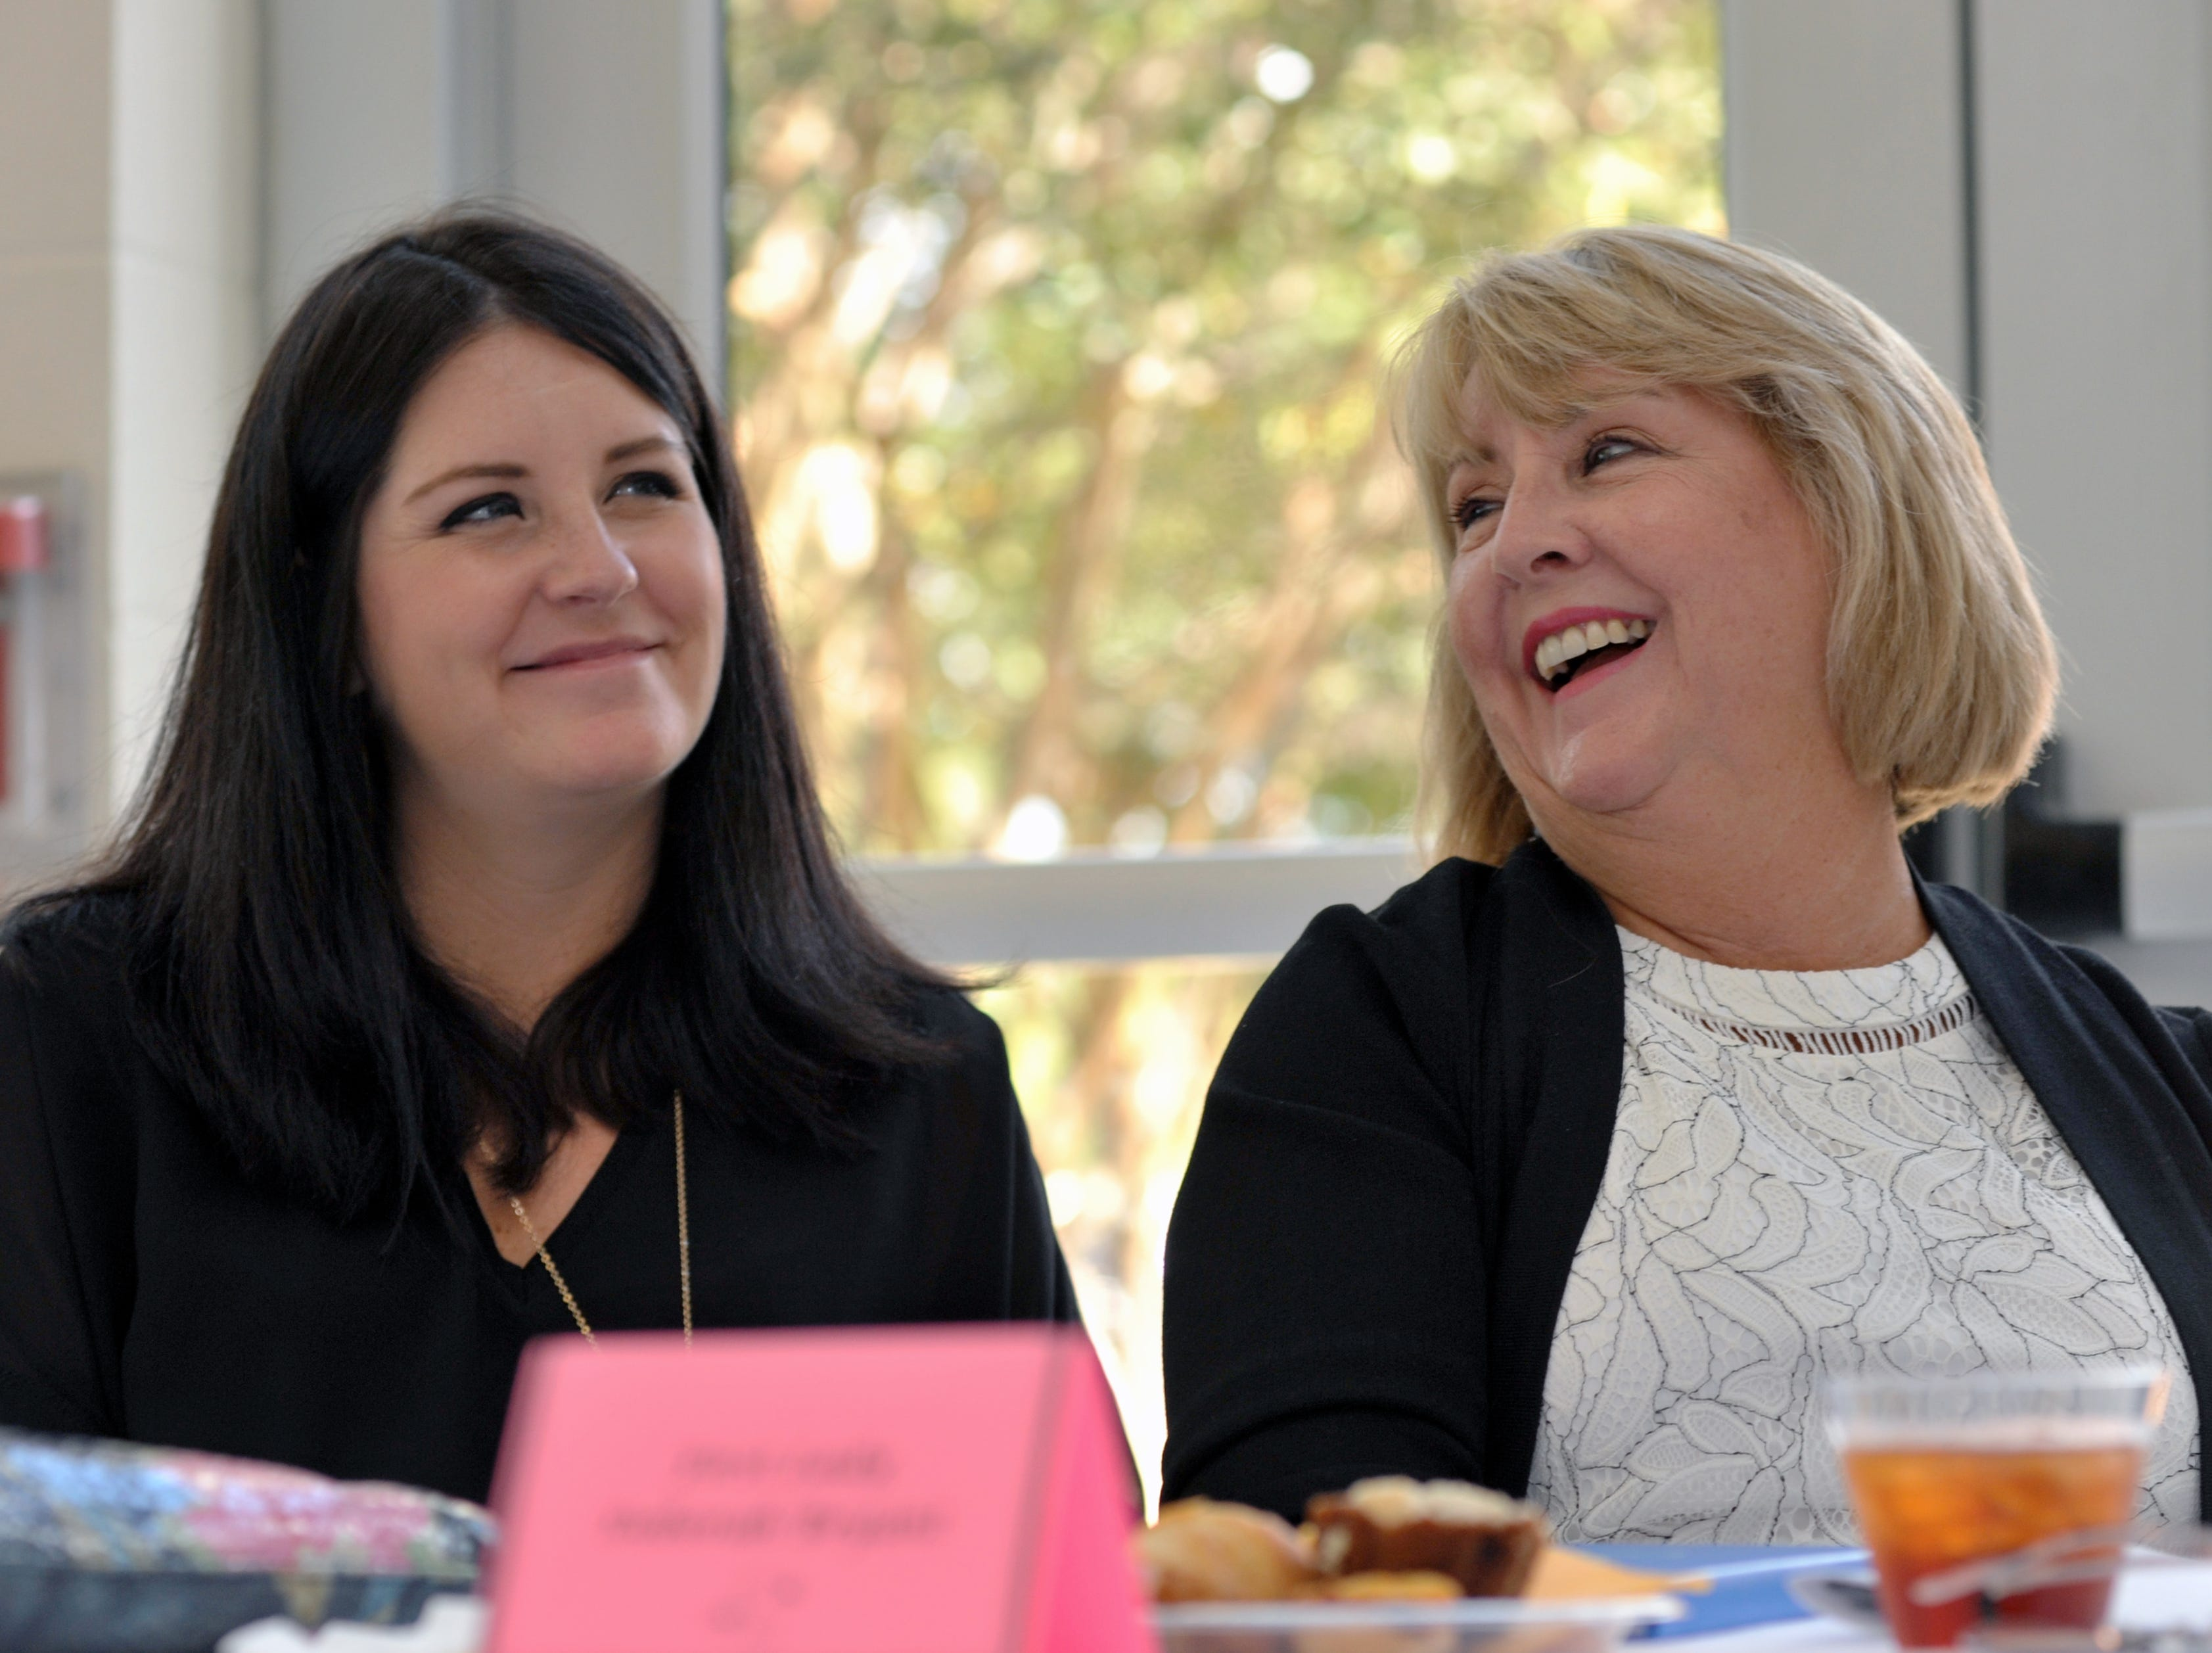 Mississippi First Lady Deborah Bryant, right, and her daughter Katie Bryant Snell, enjoy the girls' speeches during the Girls with Purpose Club Mother Daughter Tea at Highland Elementary School in Ridgeland Friday, Sept. 21, 2018.